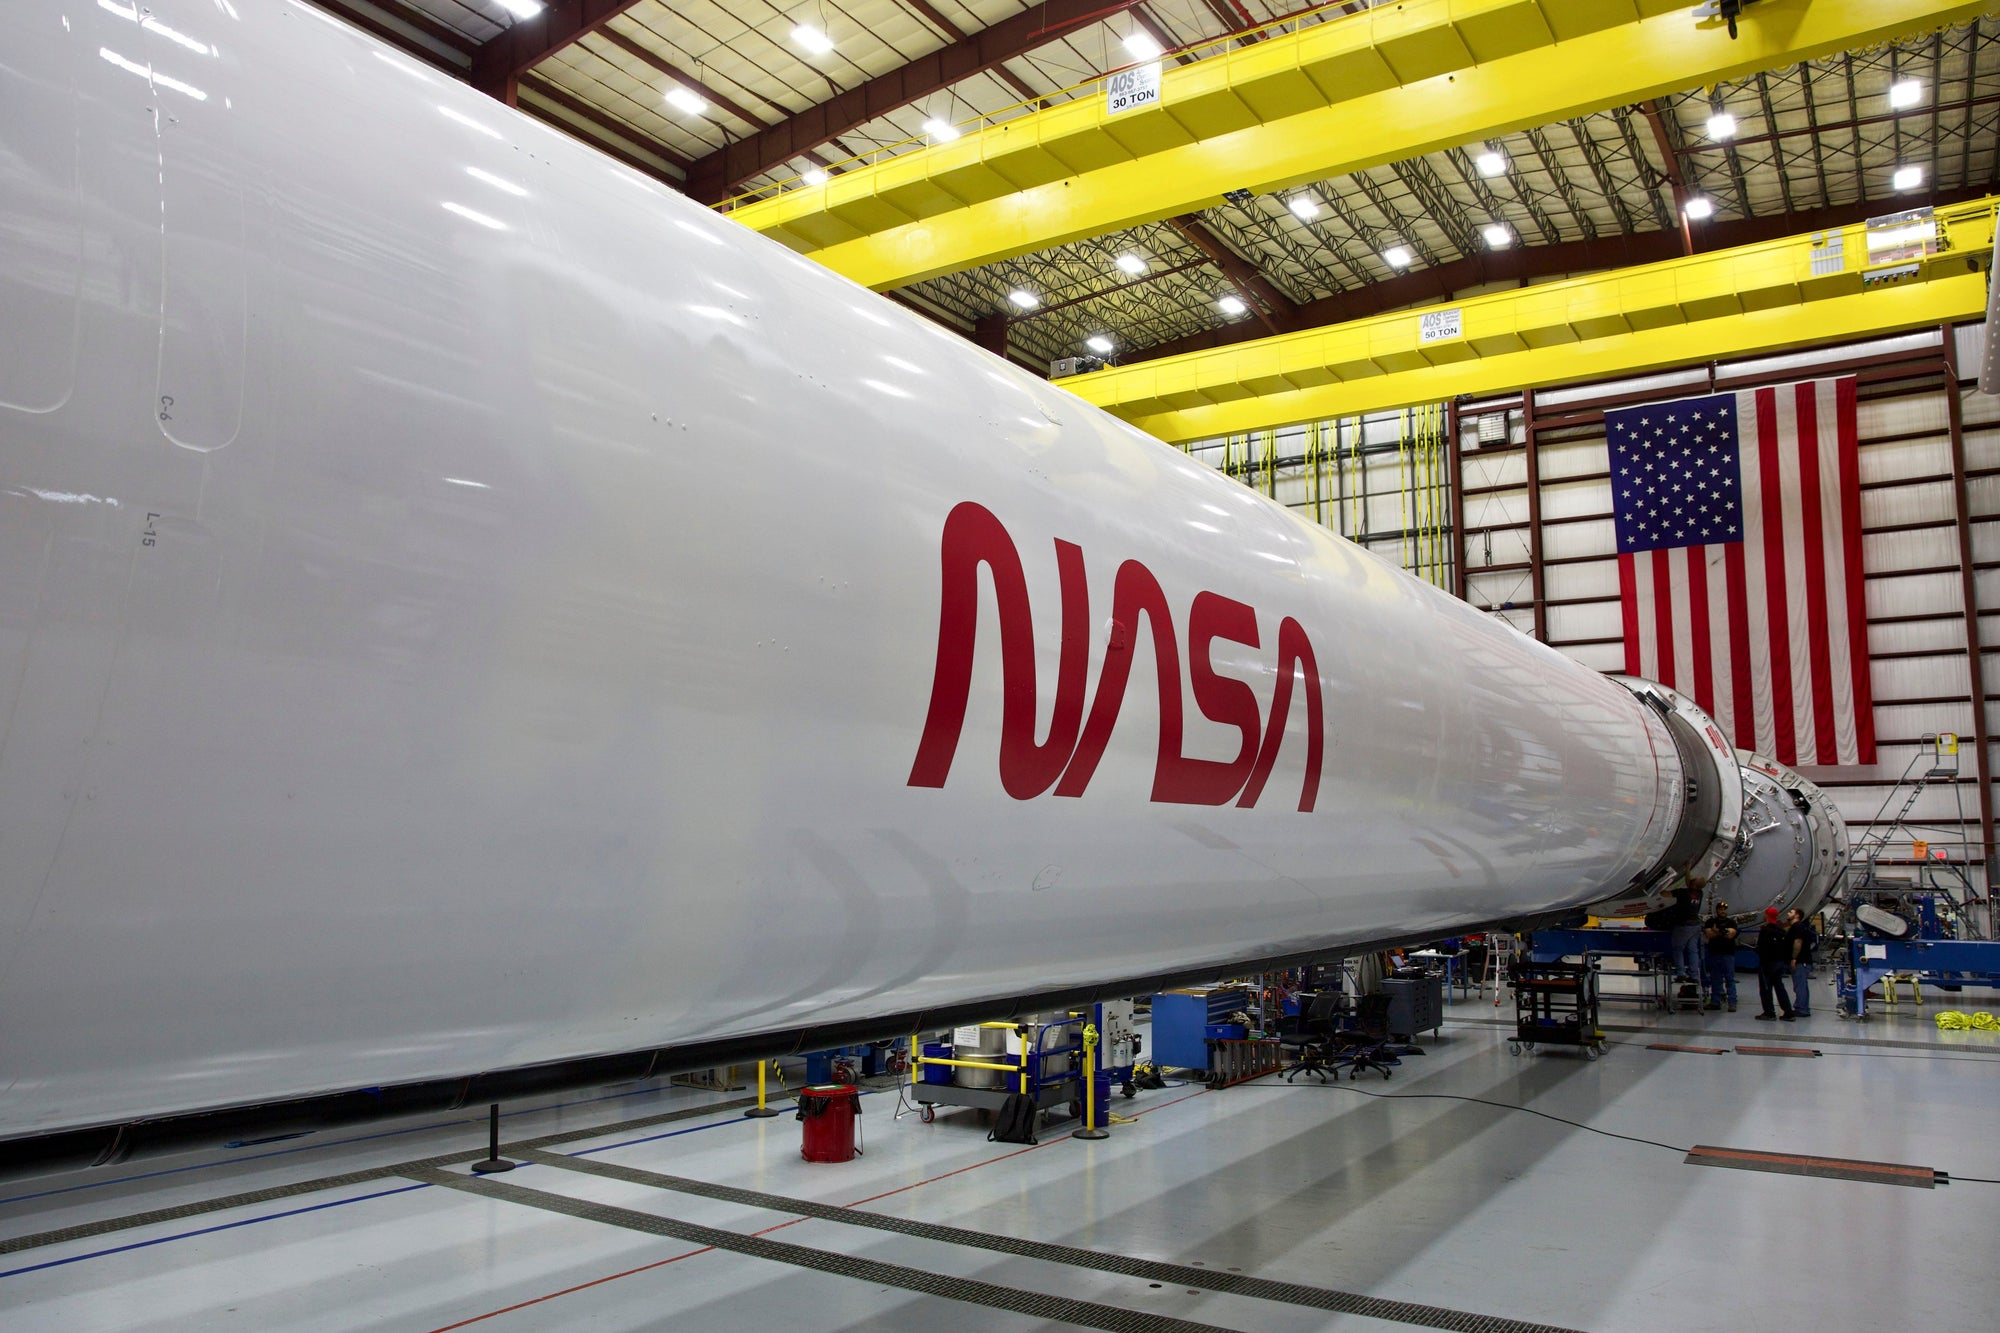 SpaceX adds retro NASA logo to Falcon 9 that will launch Dragon on its first crewed flight